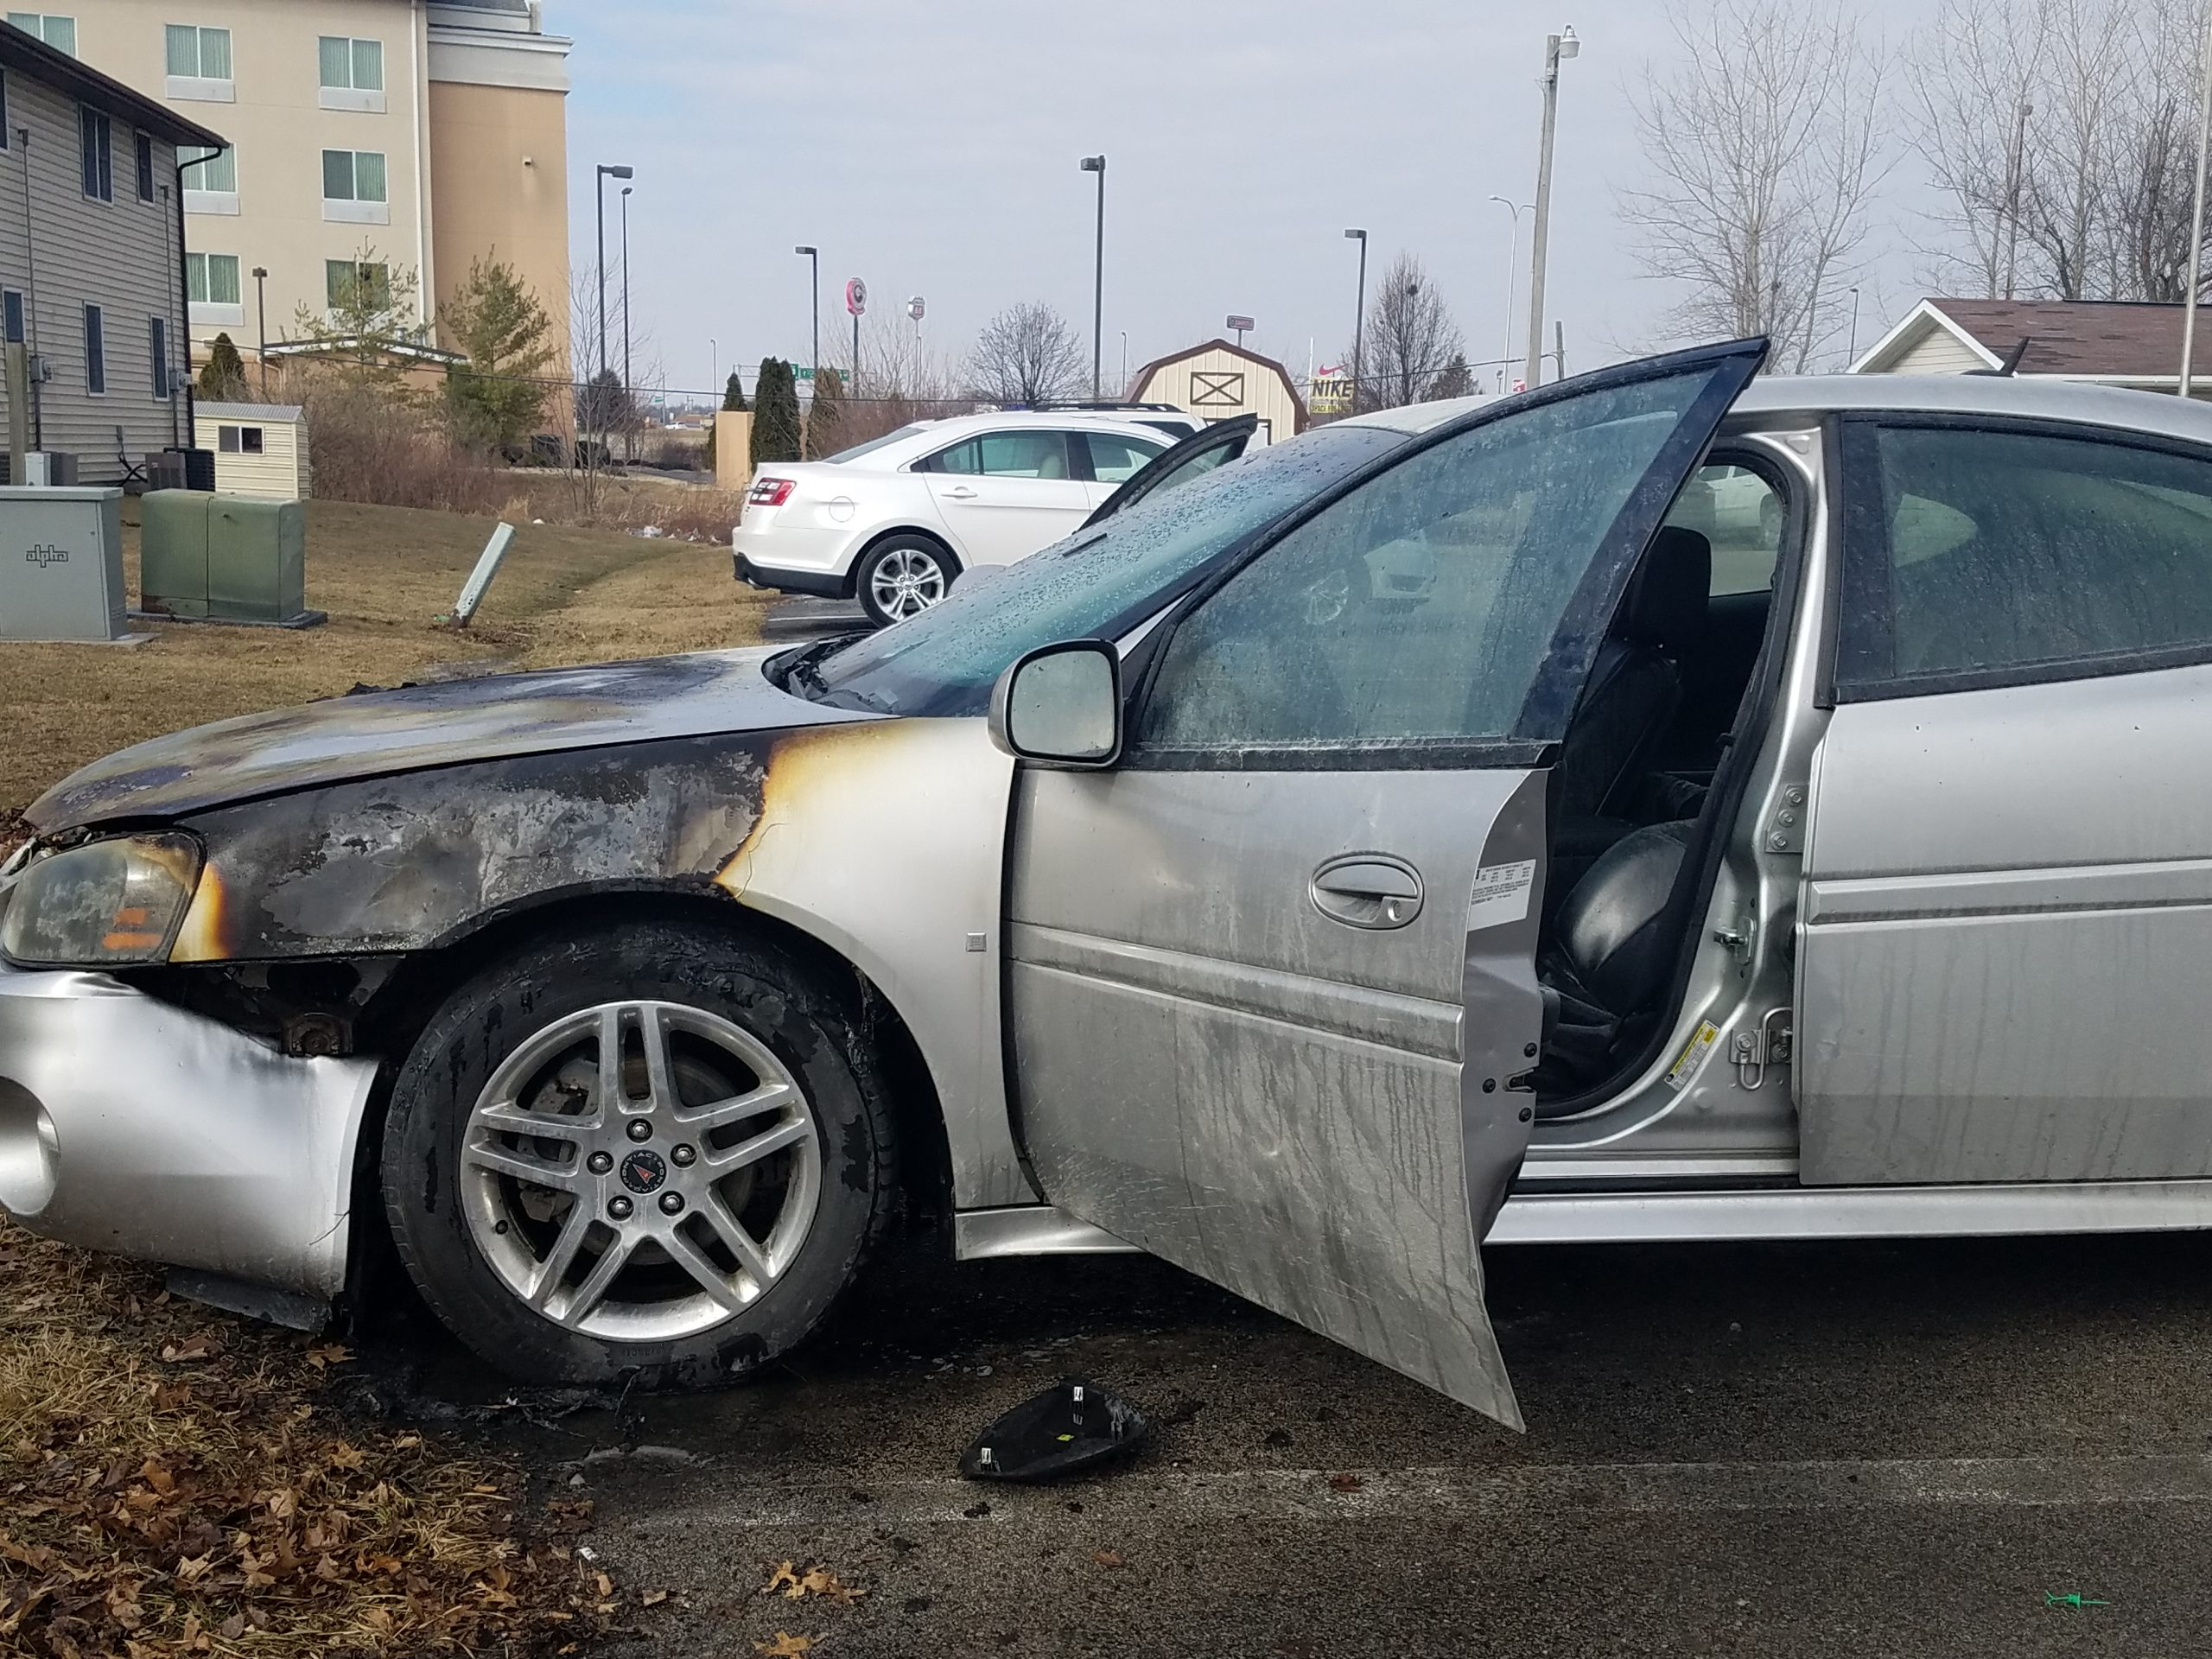 Vehicle Catches Fire Near Evergreen Nursing and Rehabilitation Center in Effingham